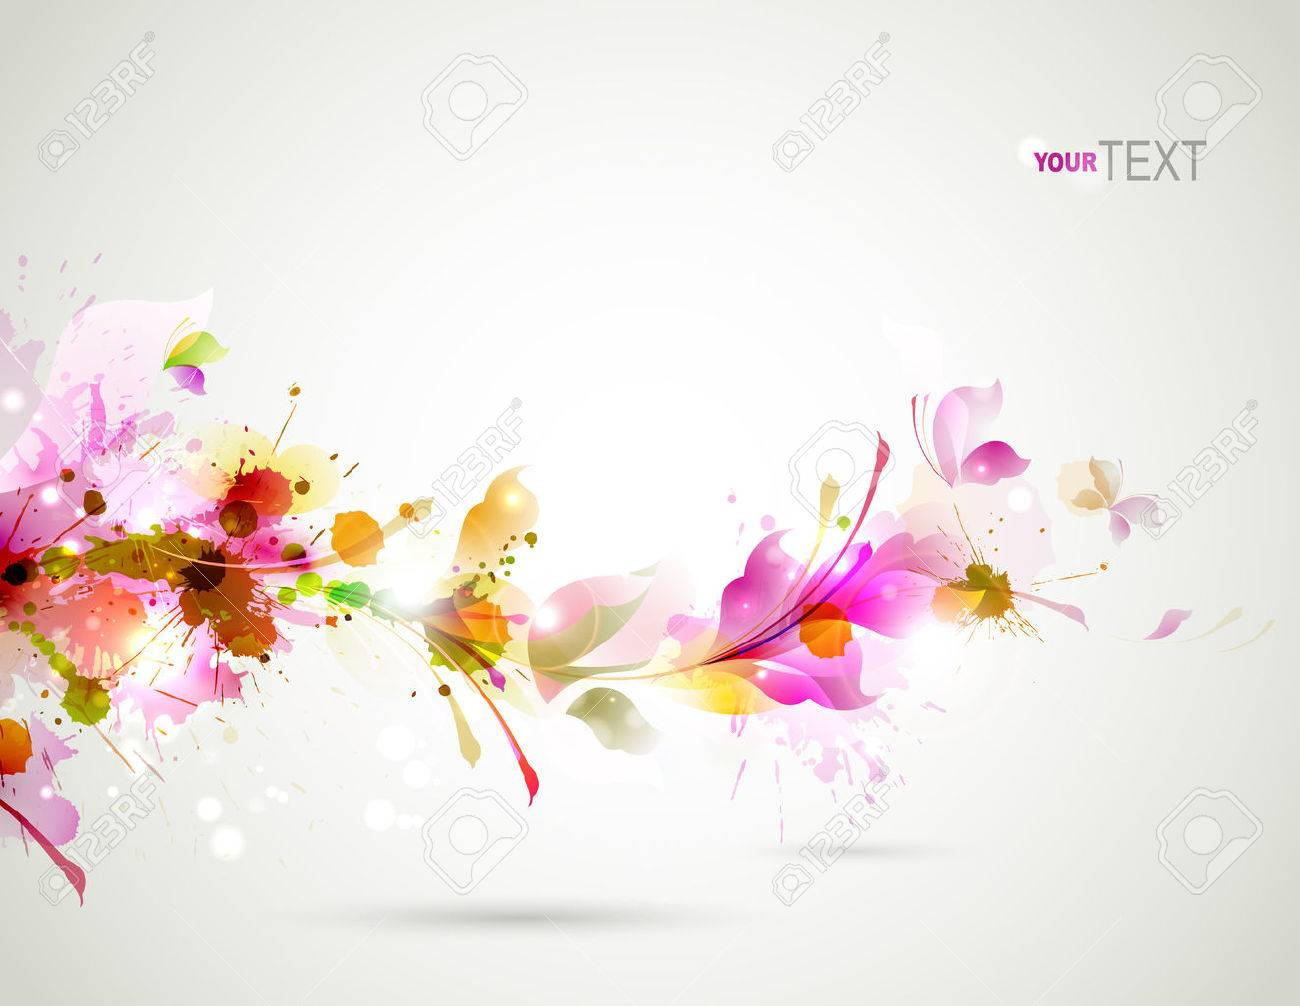 Abstract background with branch of floral Stock Vector - 25183672